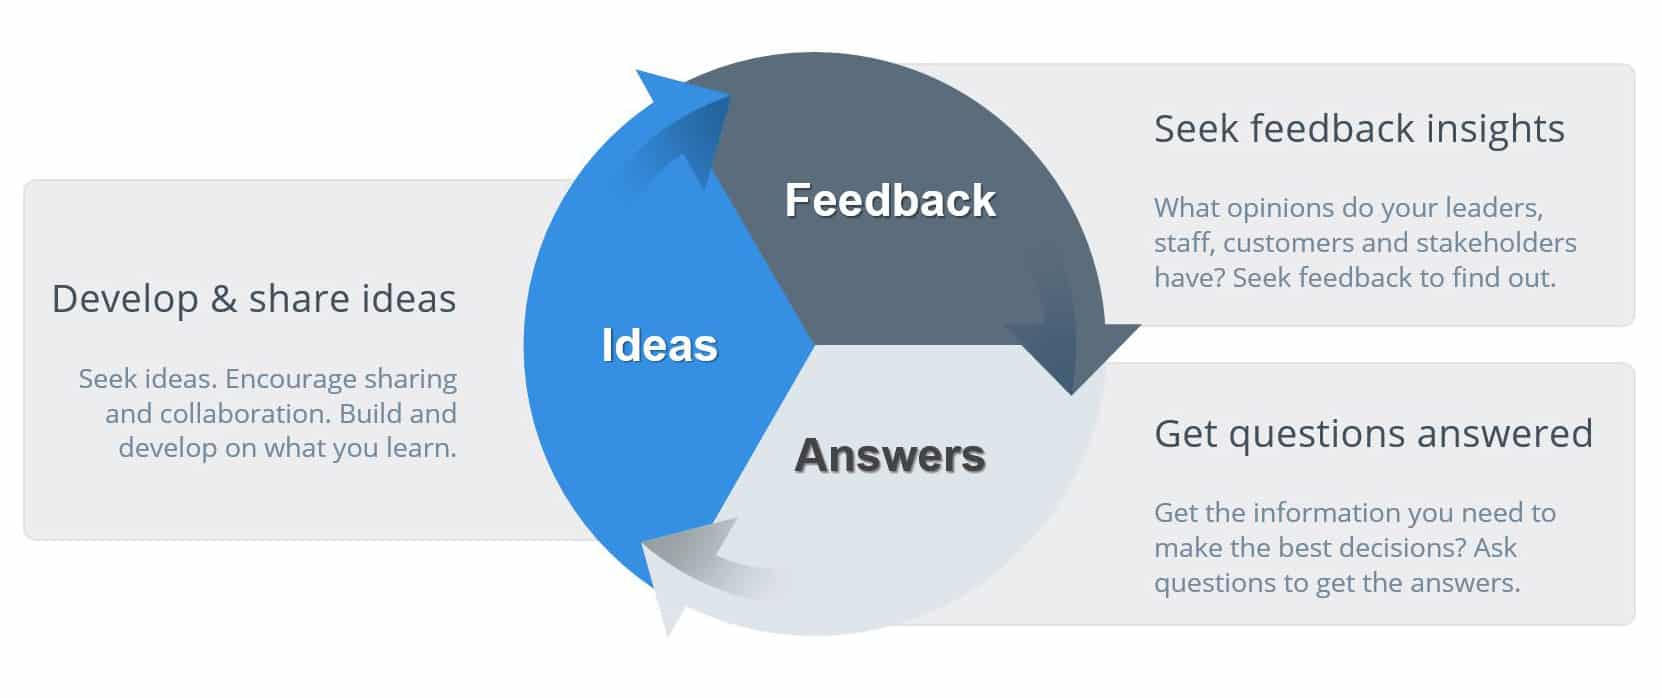 Feedback is Central to Everything